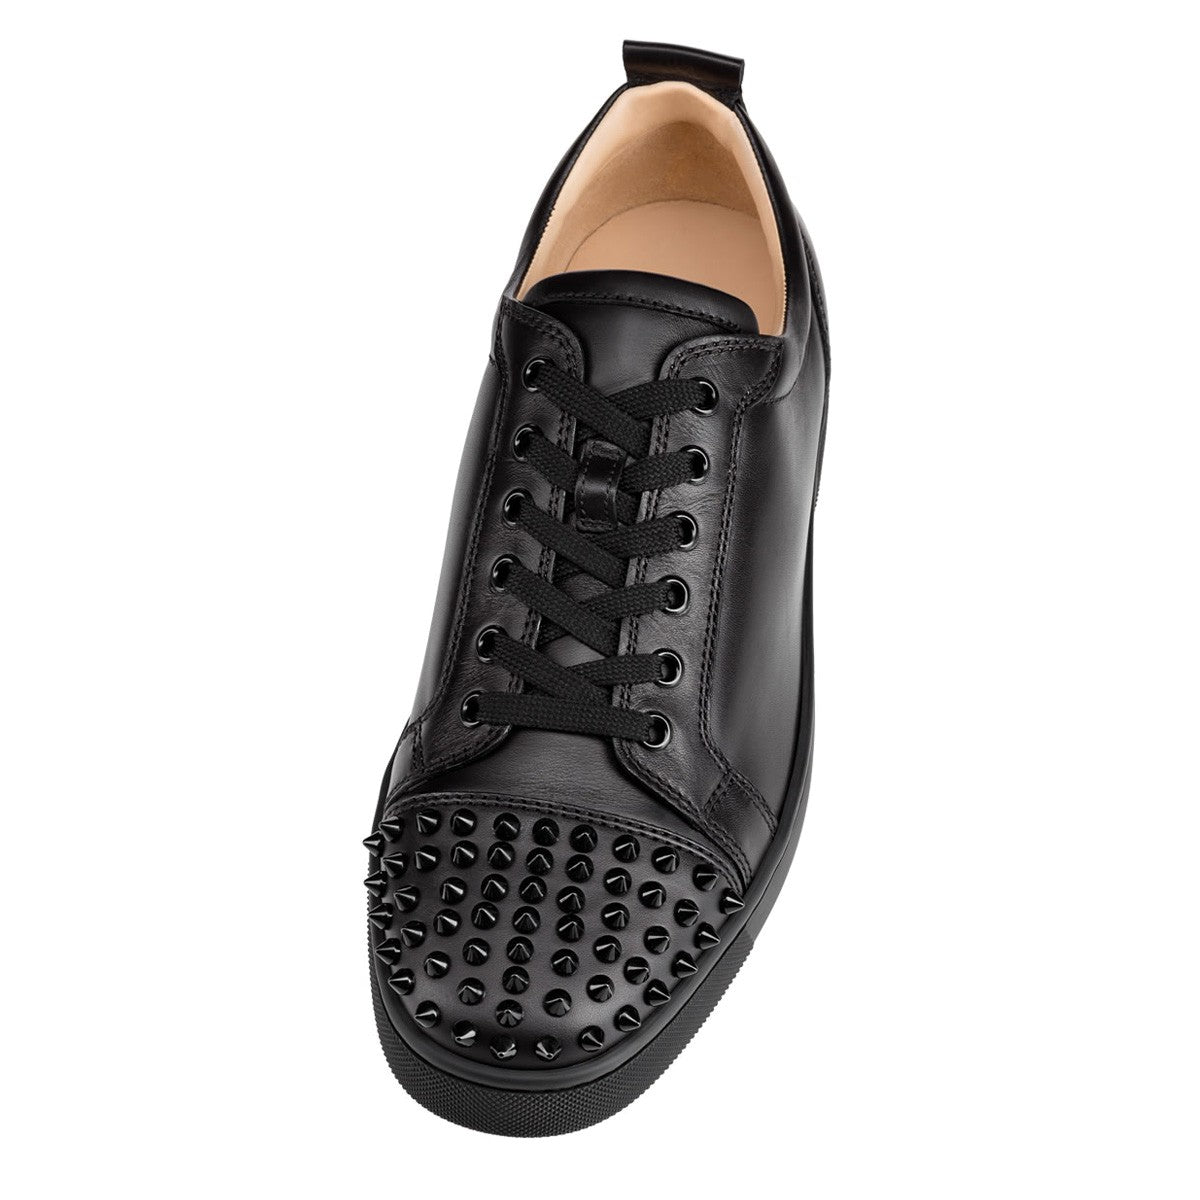 8e08647b9f4 Black Leather Low Top Louboutin Sneakers – Antigua fashion